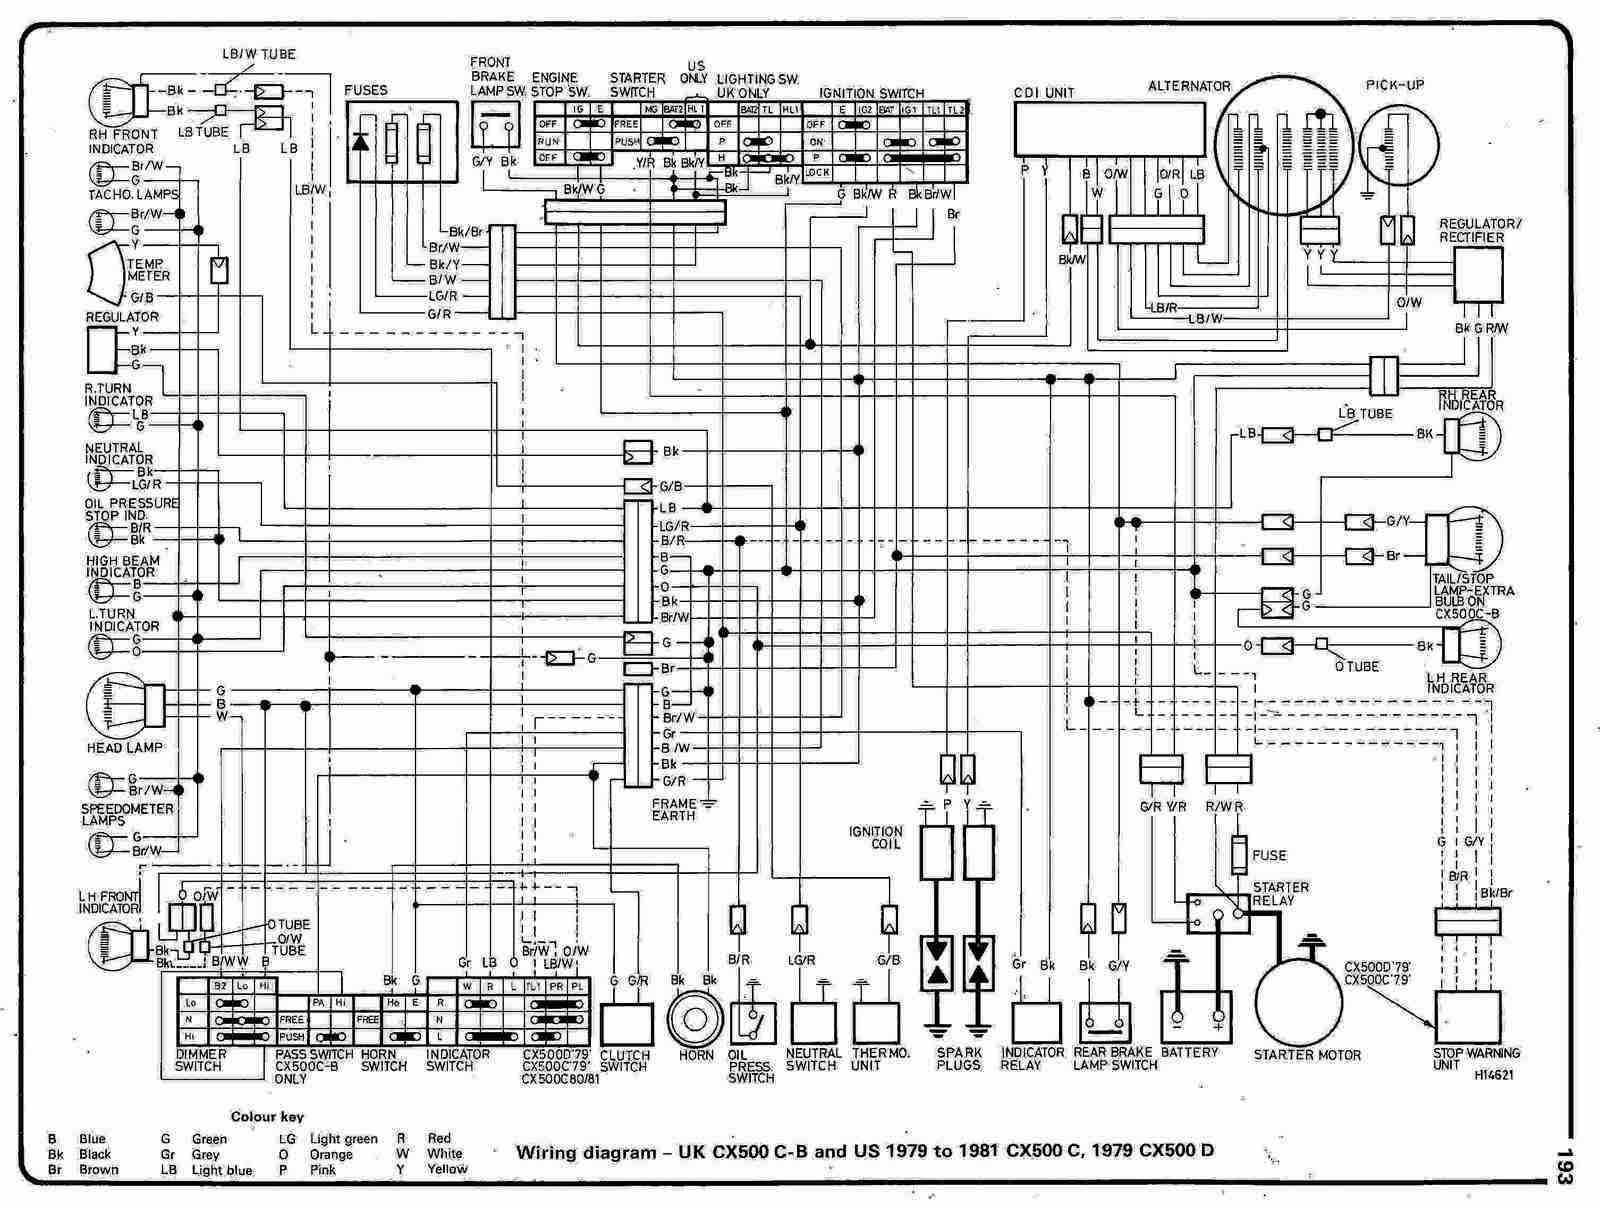 Gl1500 Wiring Diagram All Kind Of Diagrams Headset Honda Cx500 C Motorcycle 1979 1981 And D Complete About Goldwing